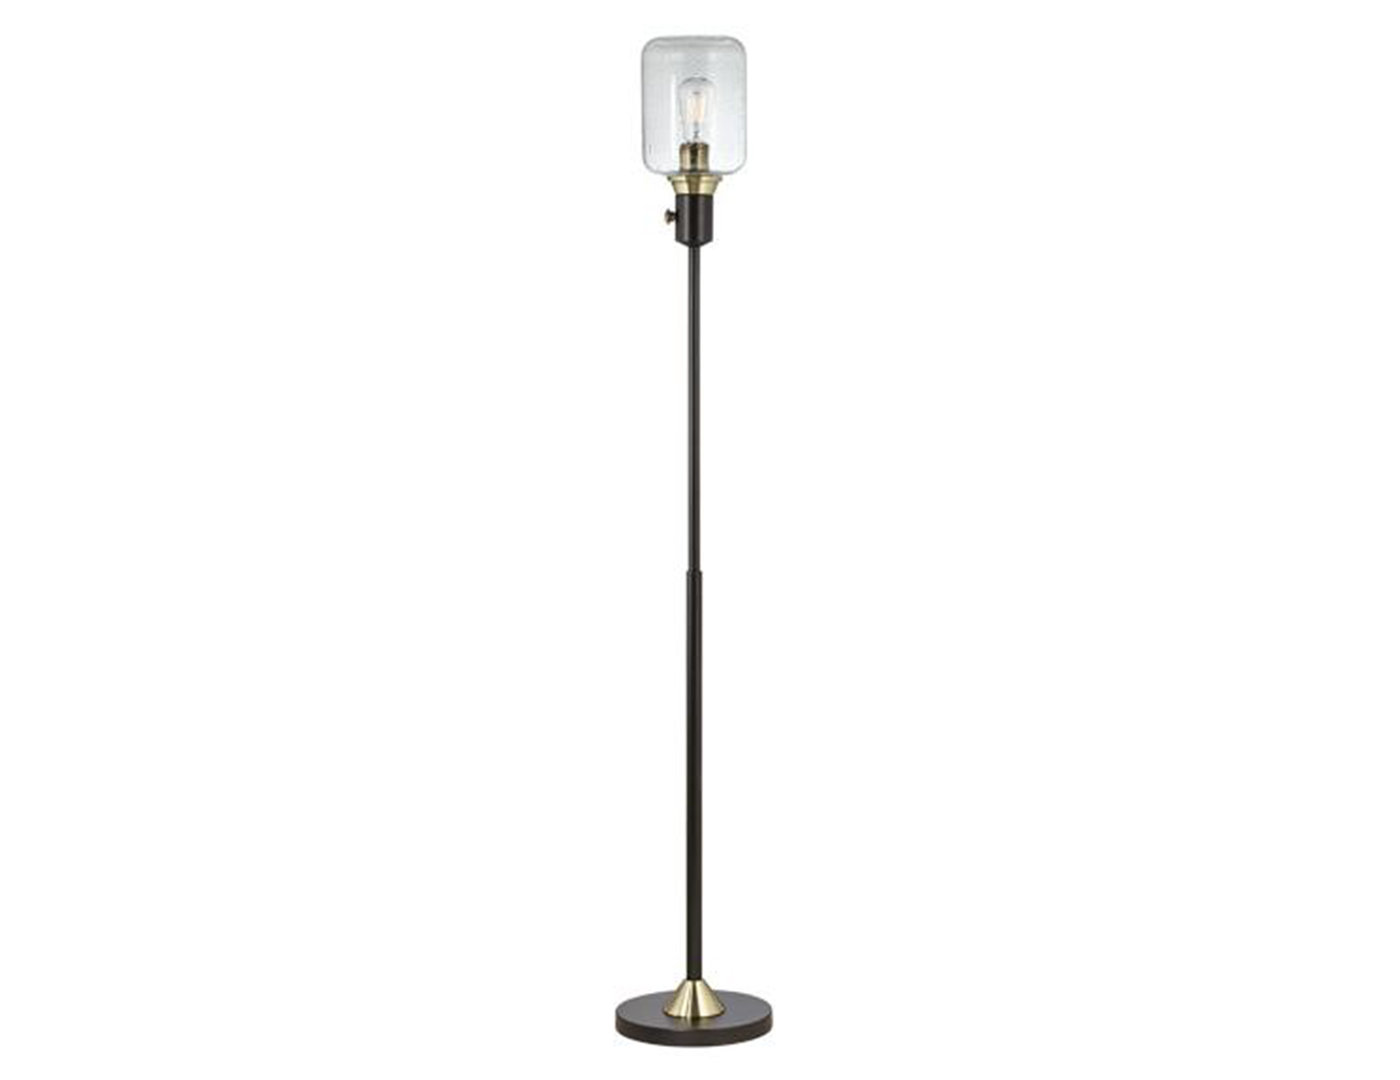 Upright Hurricane Floor Lamp